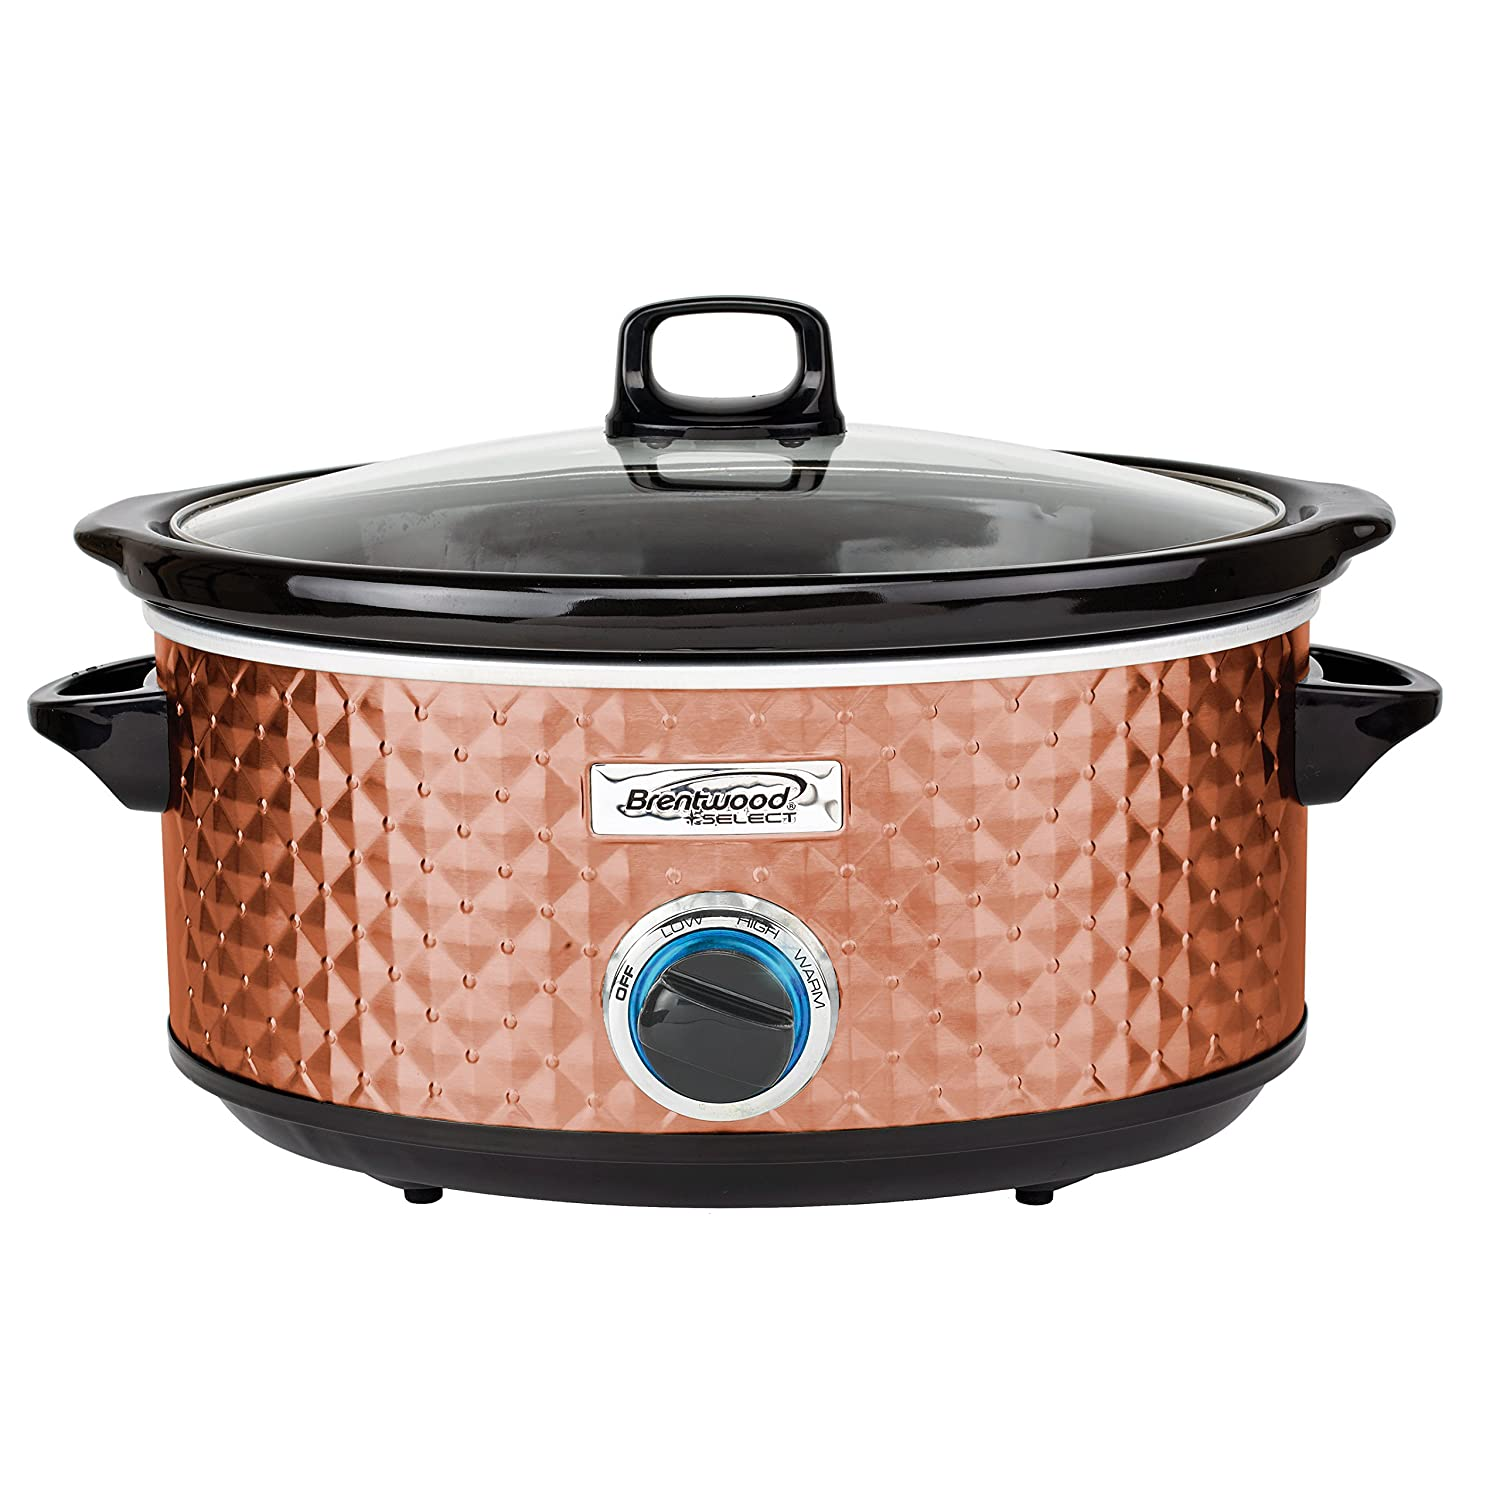 Brentwood SC-157C Diamond Pattern, 7 Quart (Copper) Slow Cooker